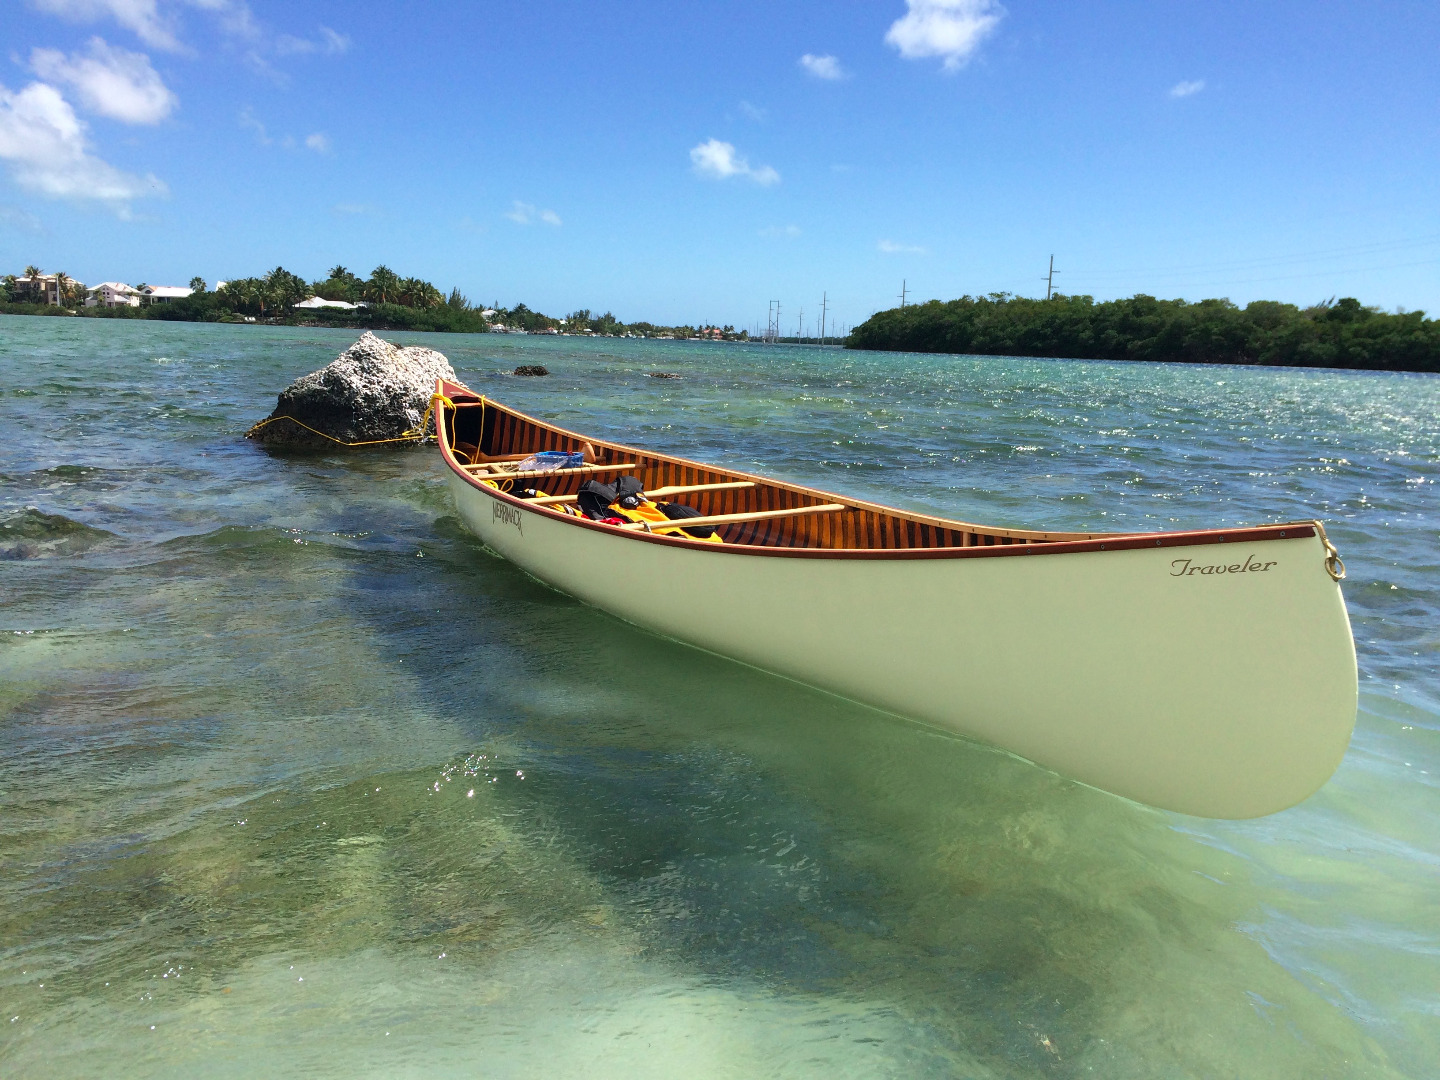 Picture of How to Clean a Canoe After Ocean Use